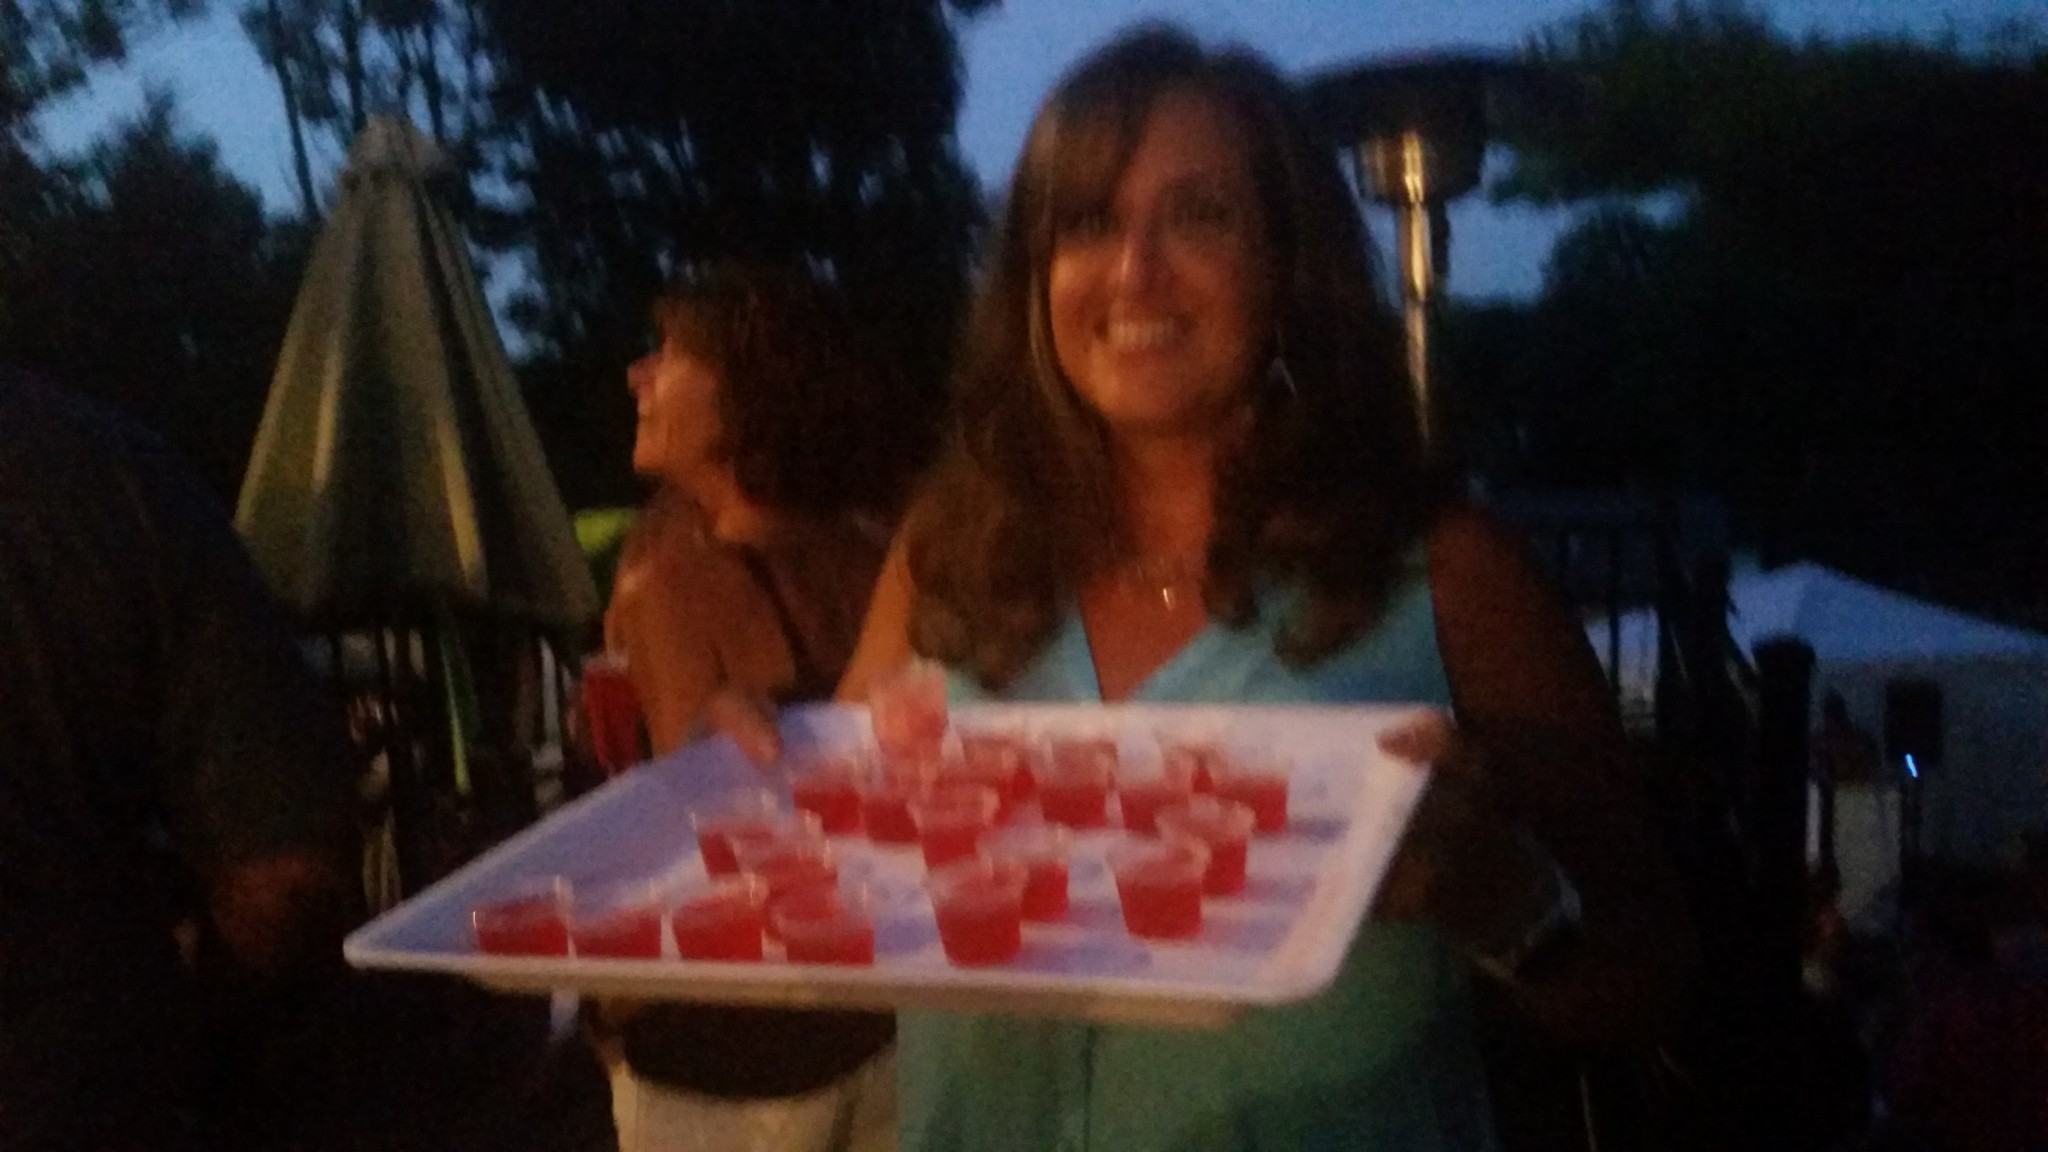 Jello shots are a festive addition to any party